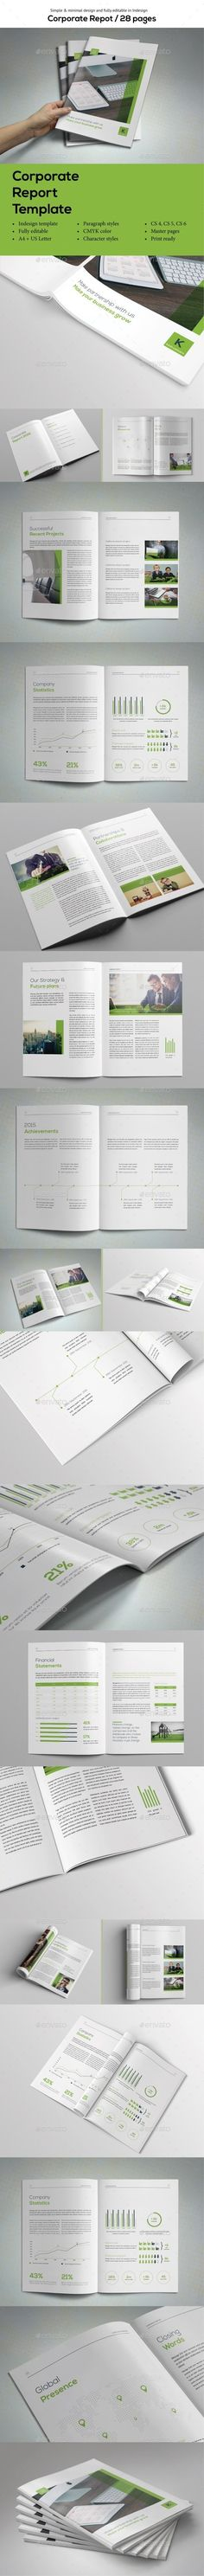 Simple Corporate Report Template InDesign INDD. Download here: http://graphicriver.net/item/simple-corporate-report/14660693?ref=ksioks